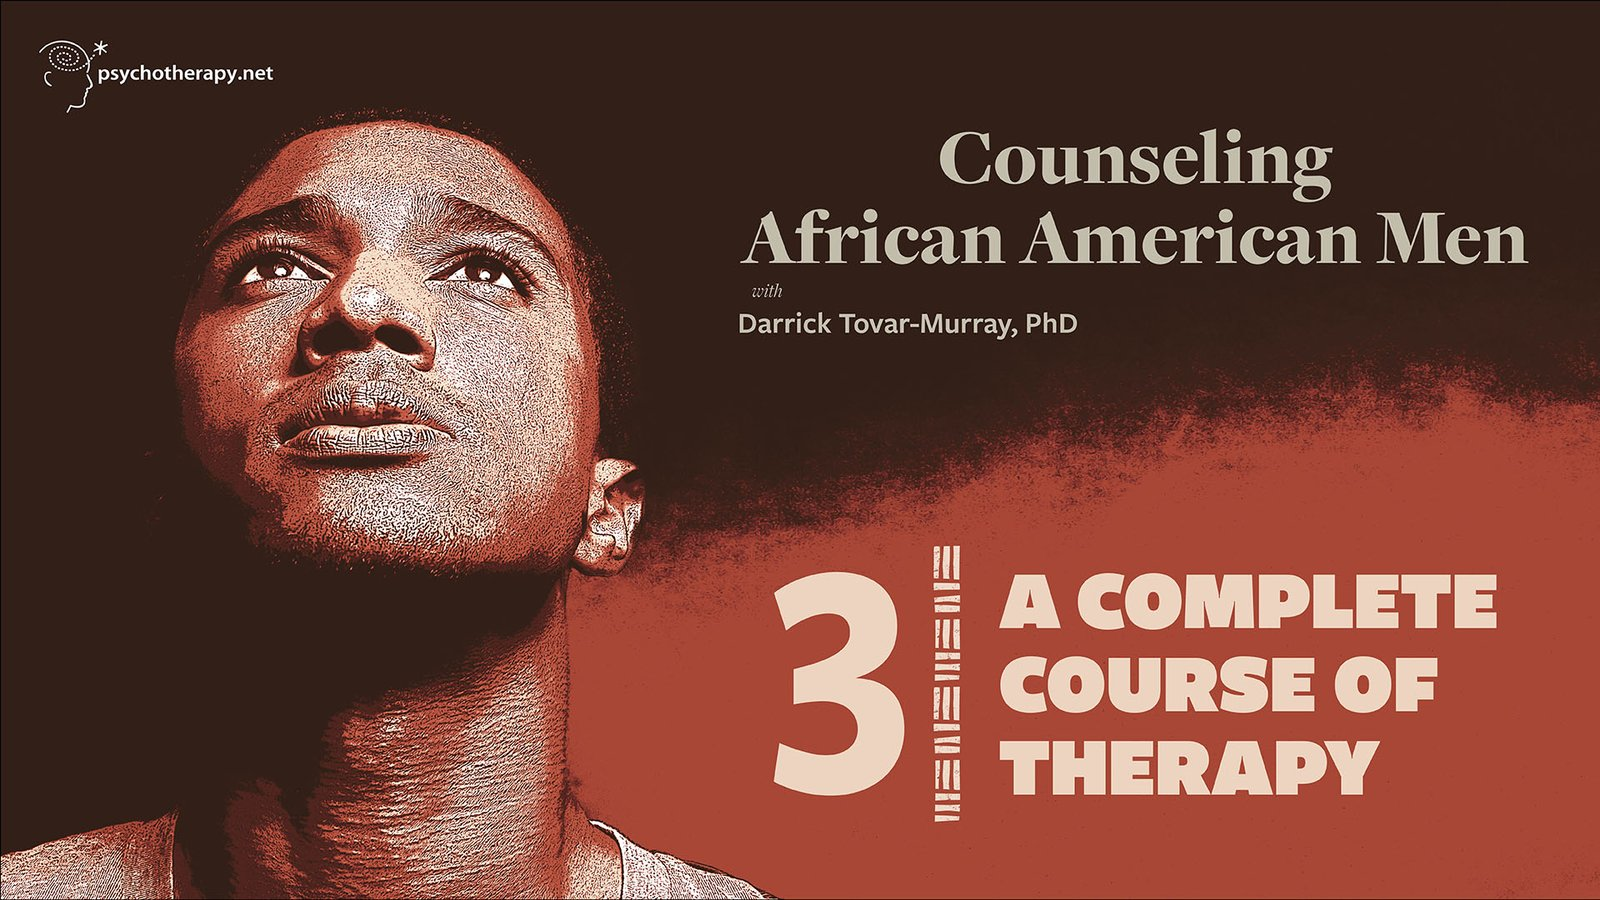 Counseling African American Men, Volume 3: A Complete Course of Therapy